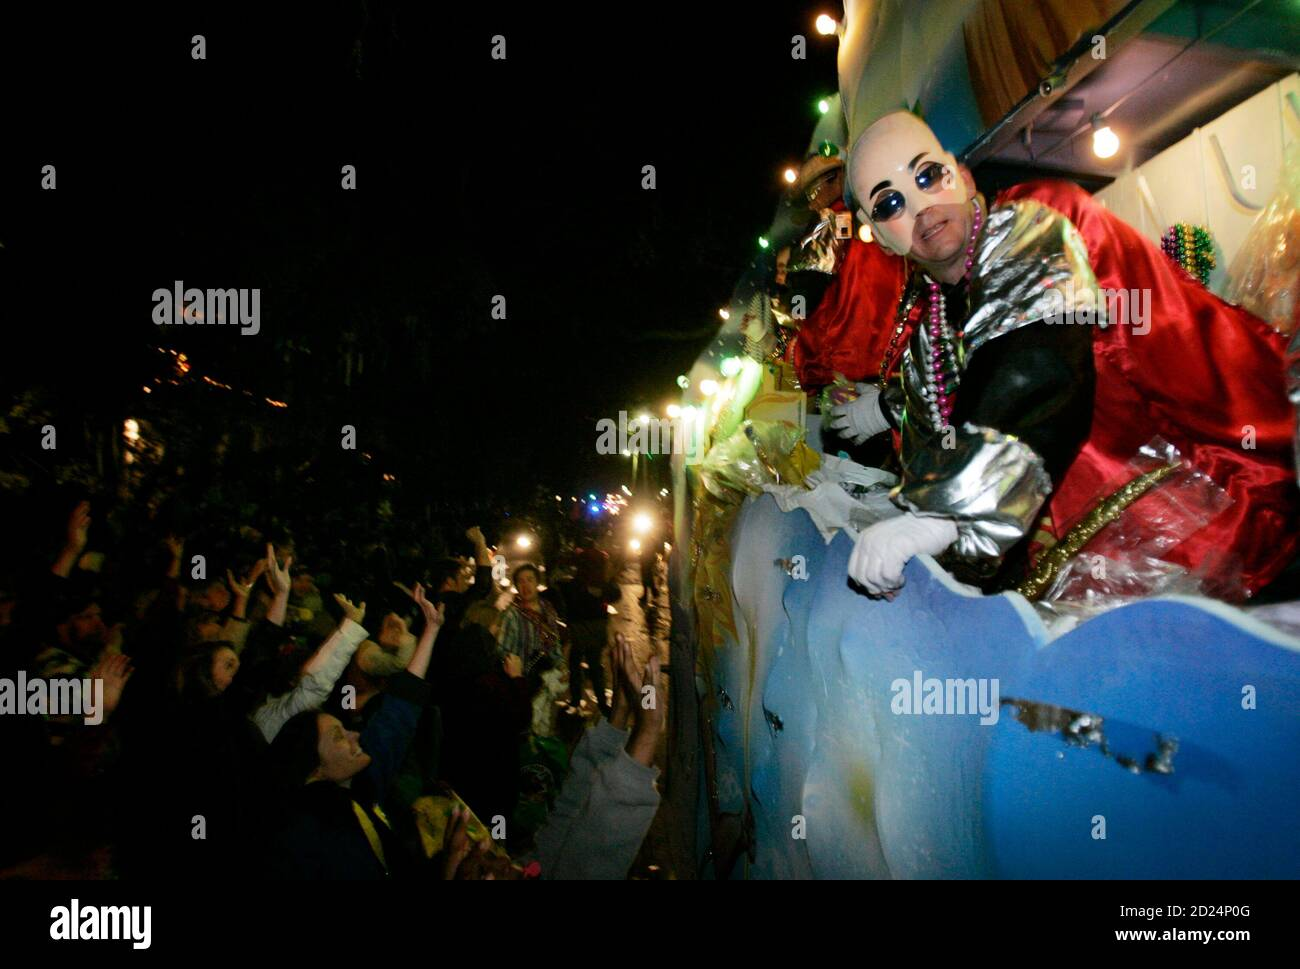 Members of the Krewe of Bacchus parade down St. Charles Avenue while celebrating the Mardi Gras weekend in New Orleans, Louisiana on February 18, 2007. REUTERS/Sean Gardner (United States) Stock Photo